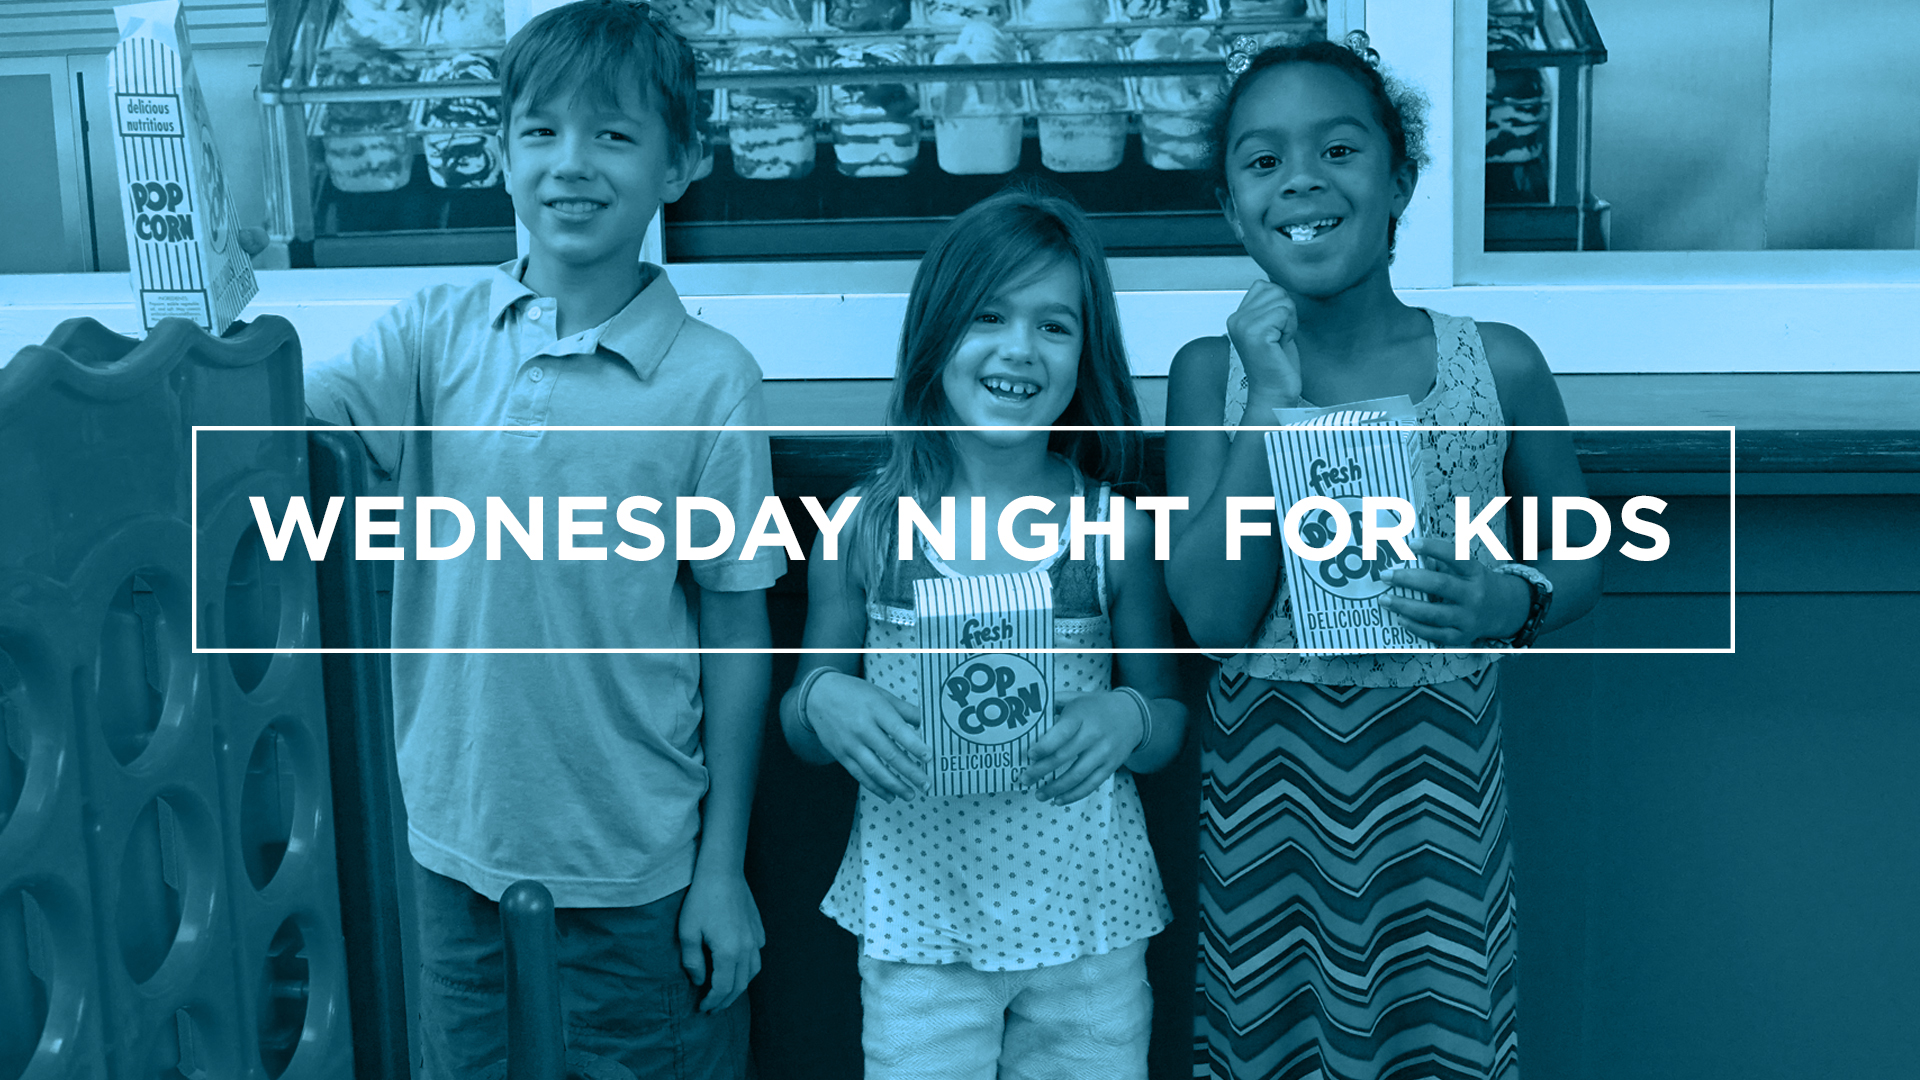 Wednesday Night For Kids